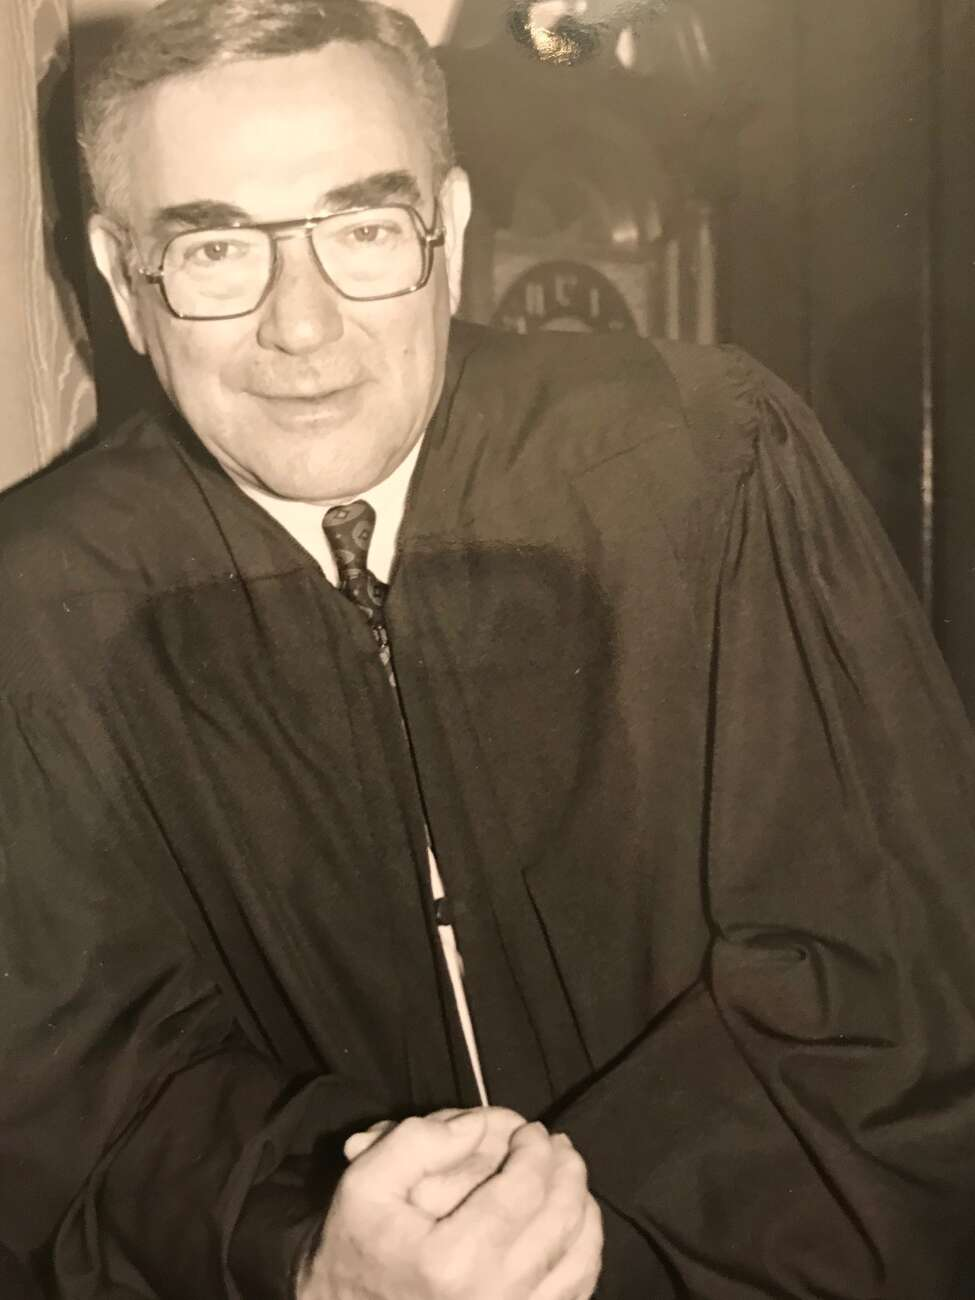 This undated photograph shows Judge Leonard A. Weiss in his judicial robes.